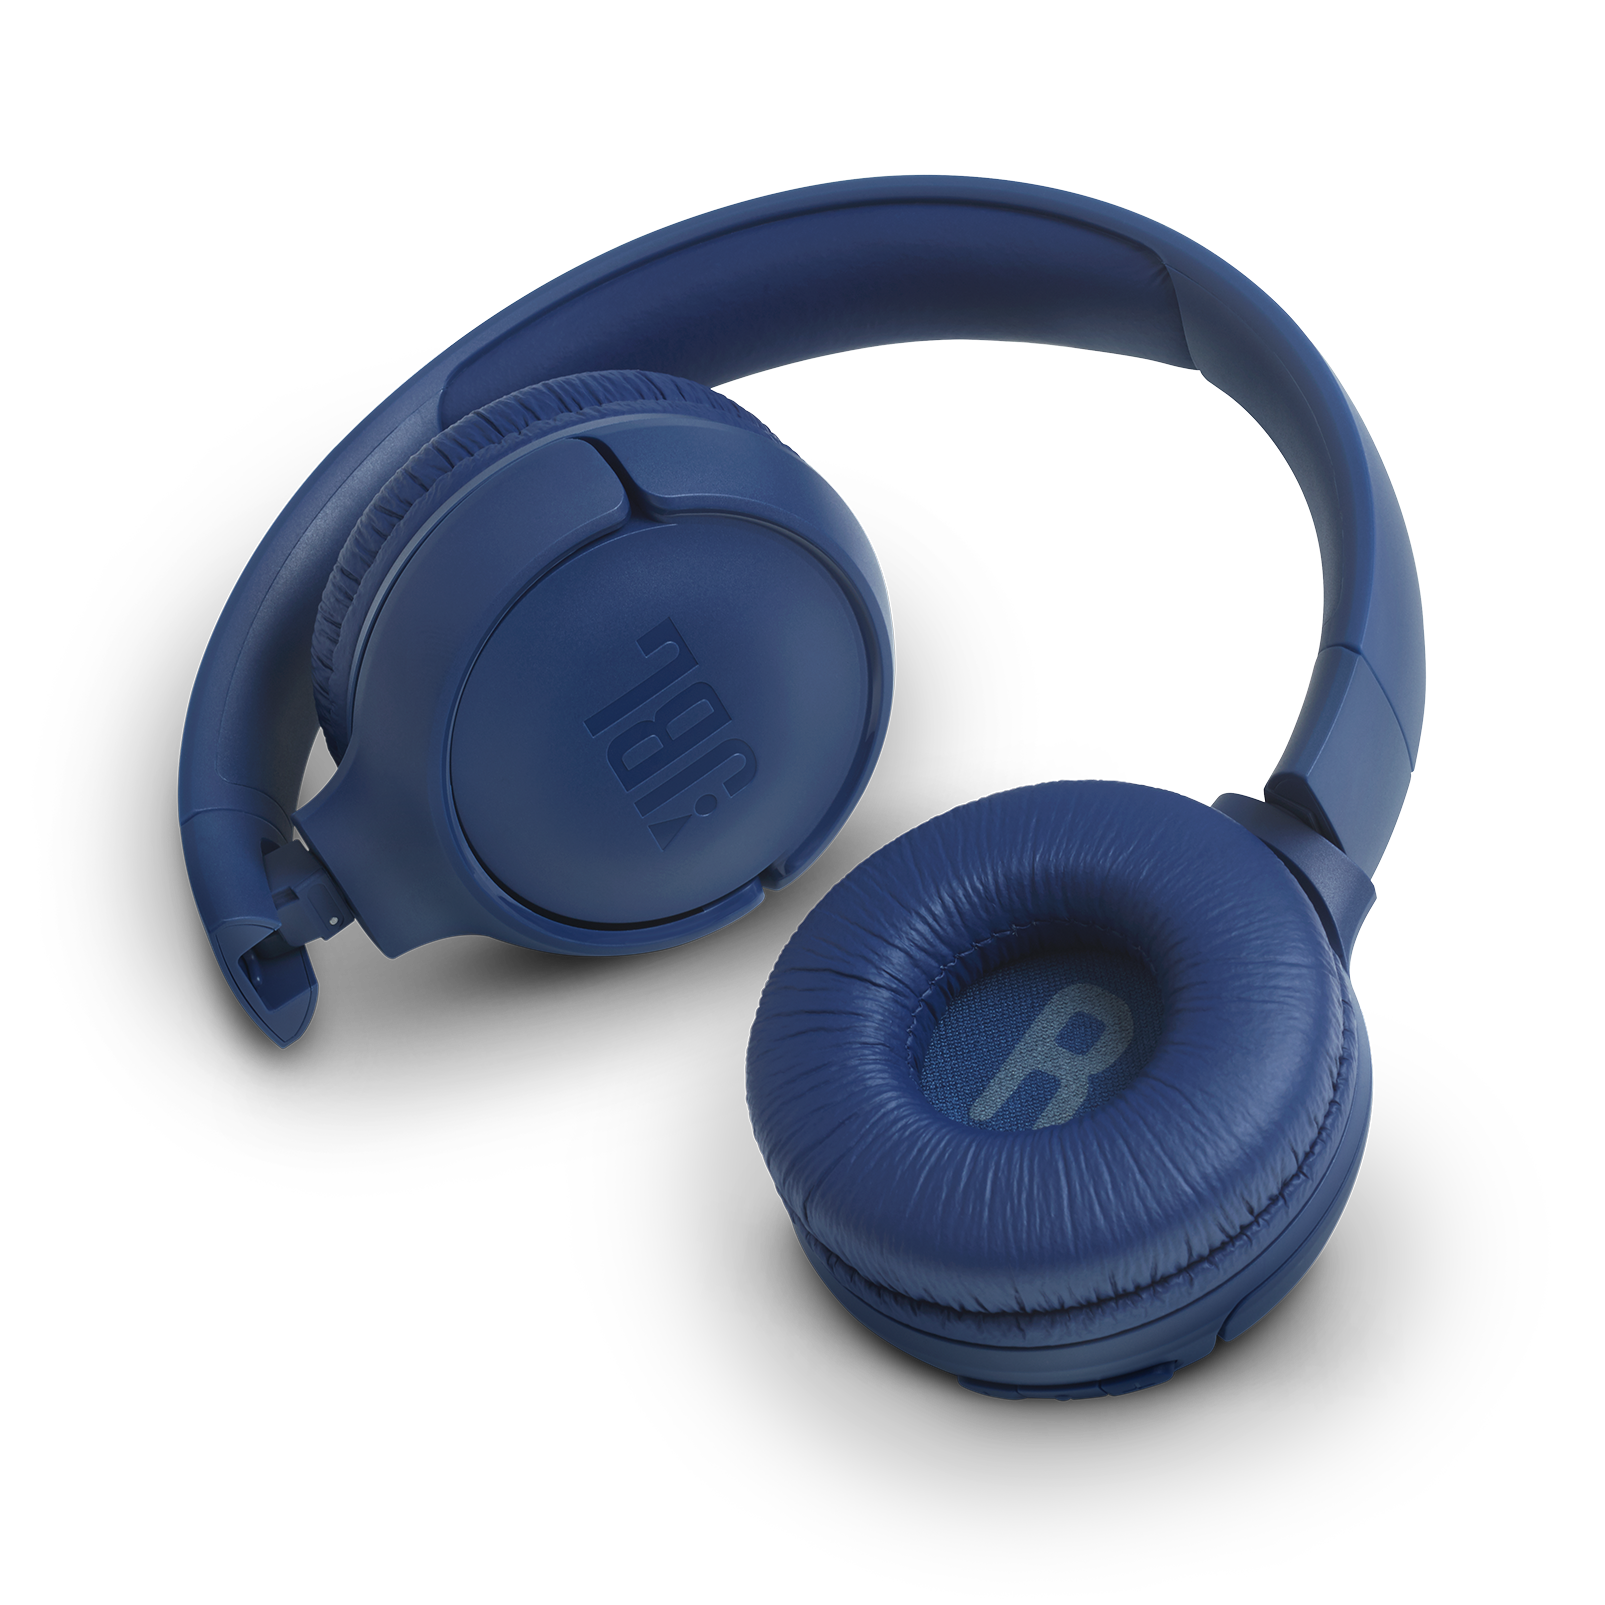 JBL TUNE 500BT - Blue - Wireless on-ear headphones - Detailshot 1